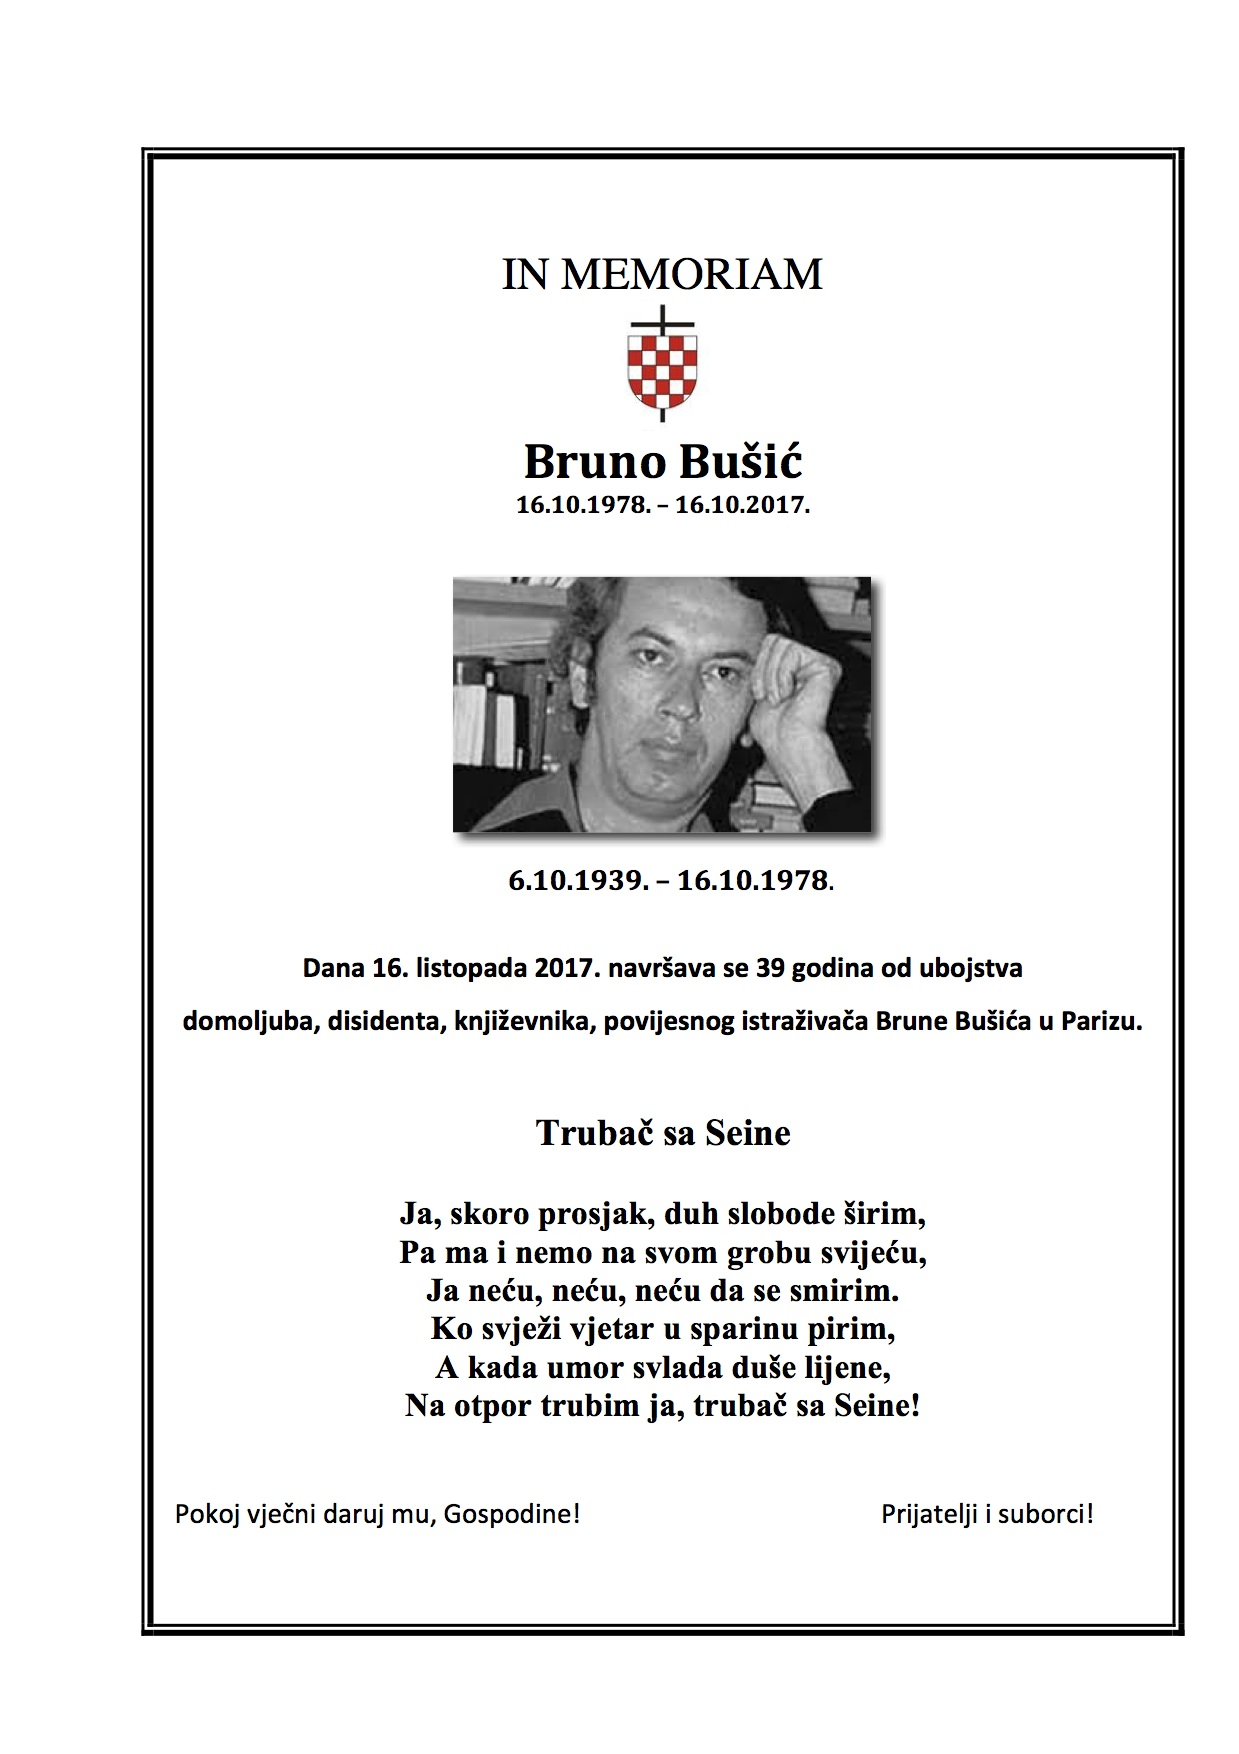 IN MEMORIAM Bruno Bušić - 2017